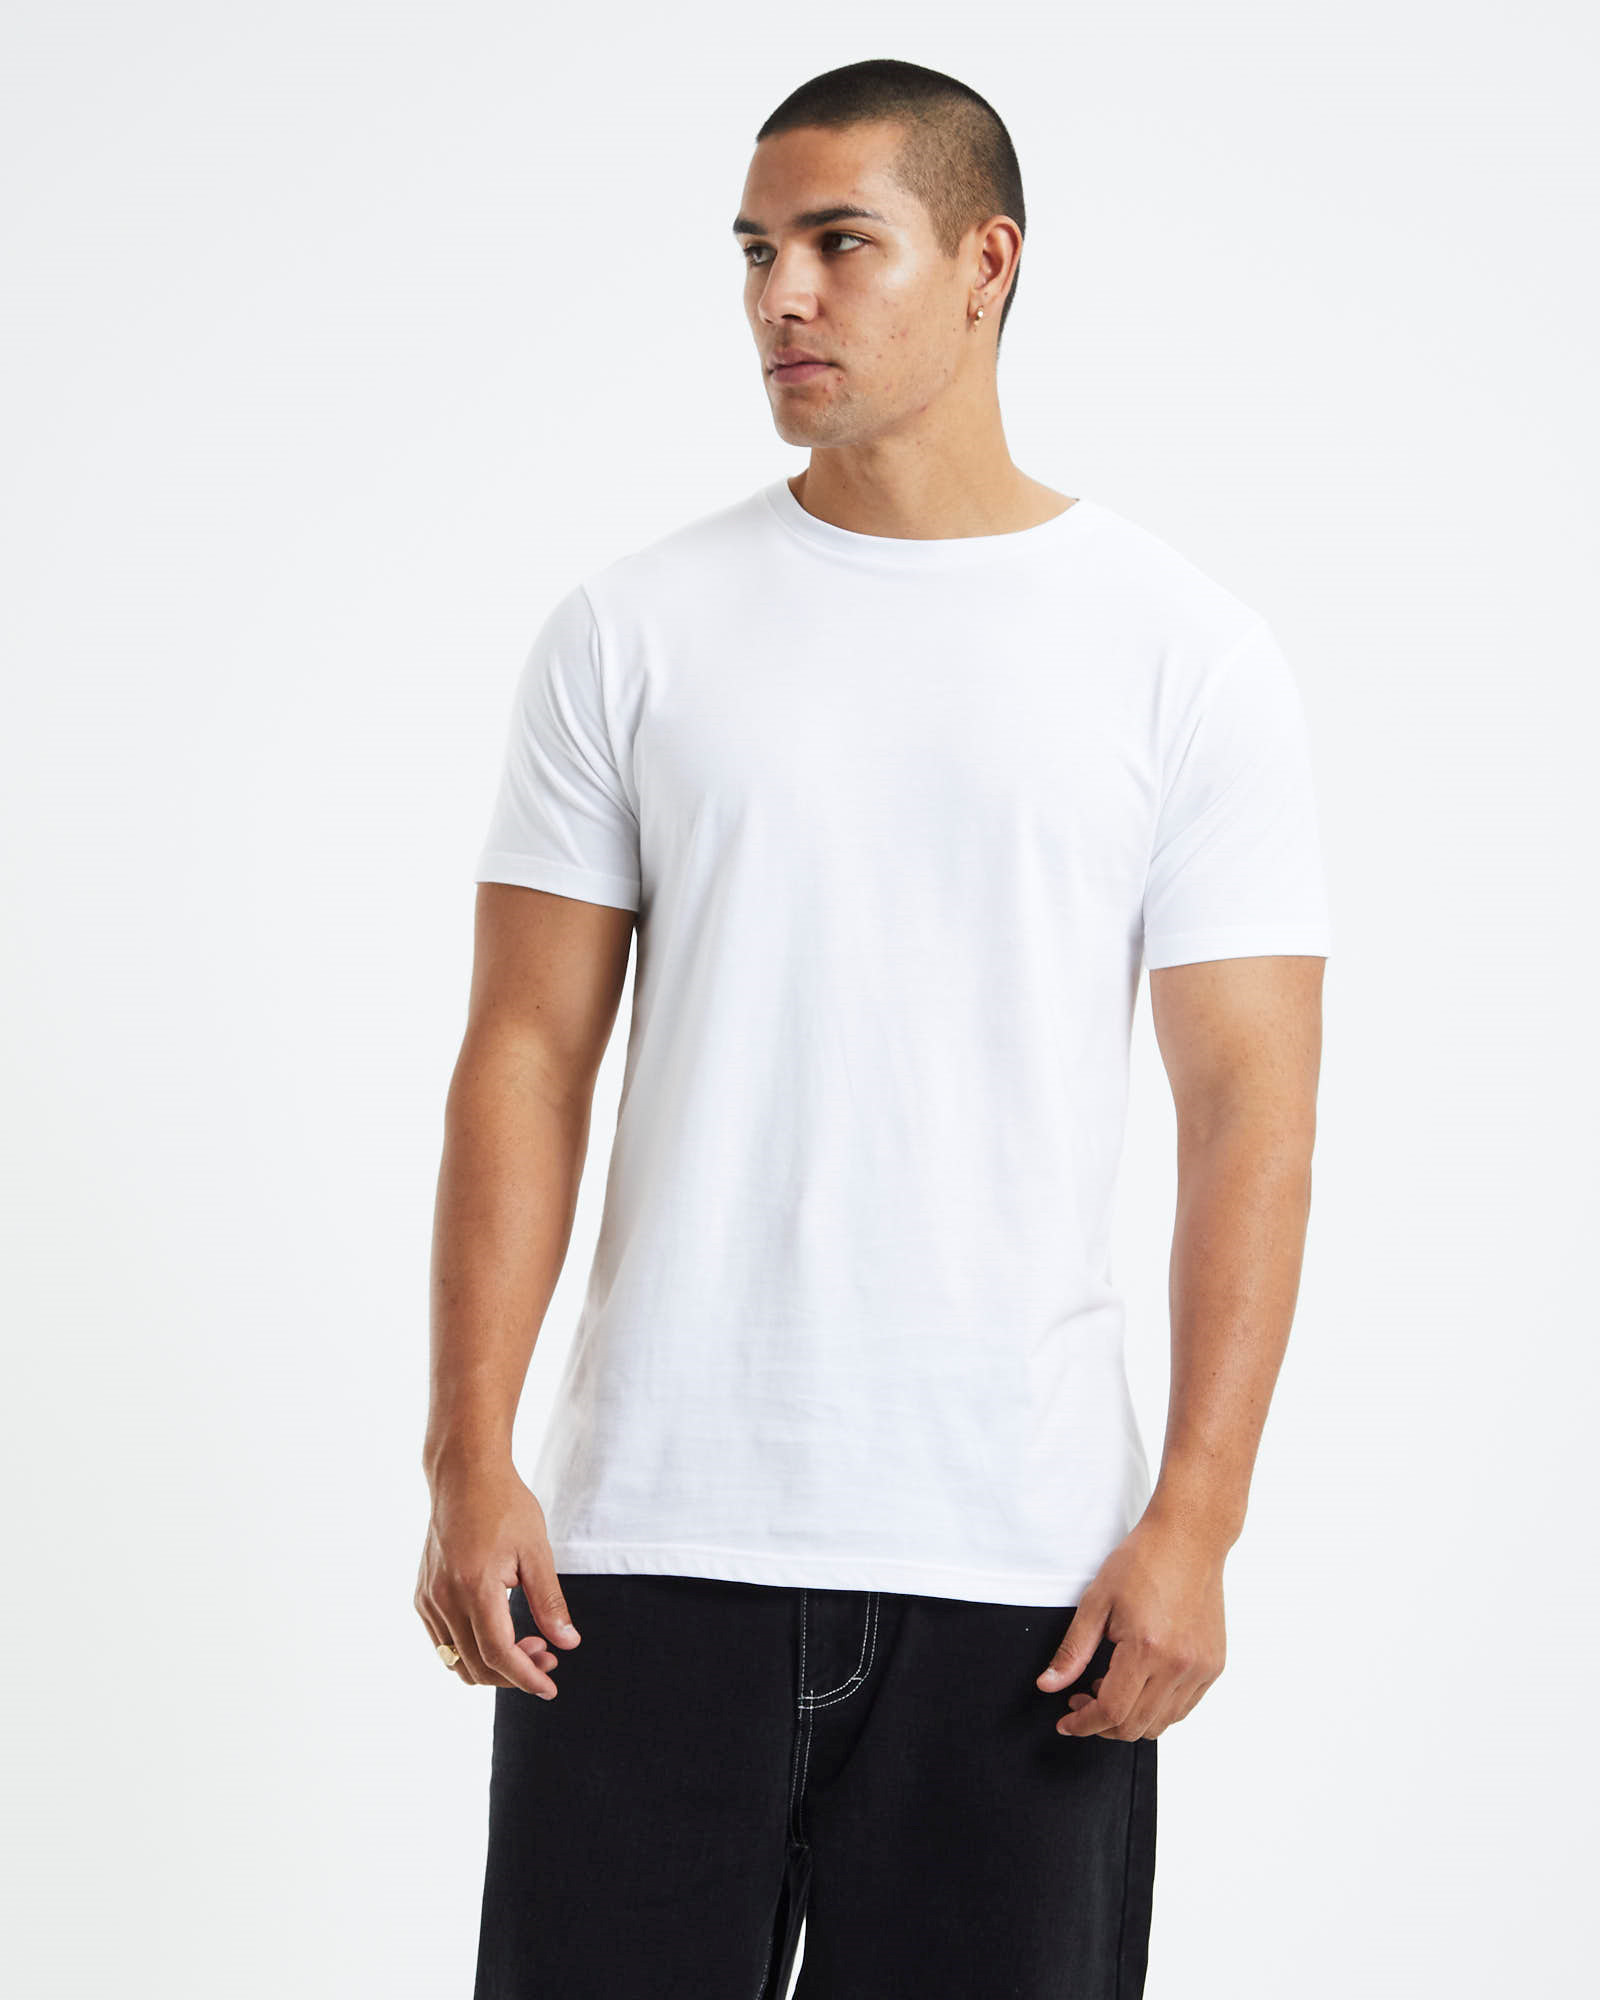 b47d10c6ad3ec7 General Pants Co. Basics Longline Tall T-Shirt White